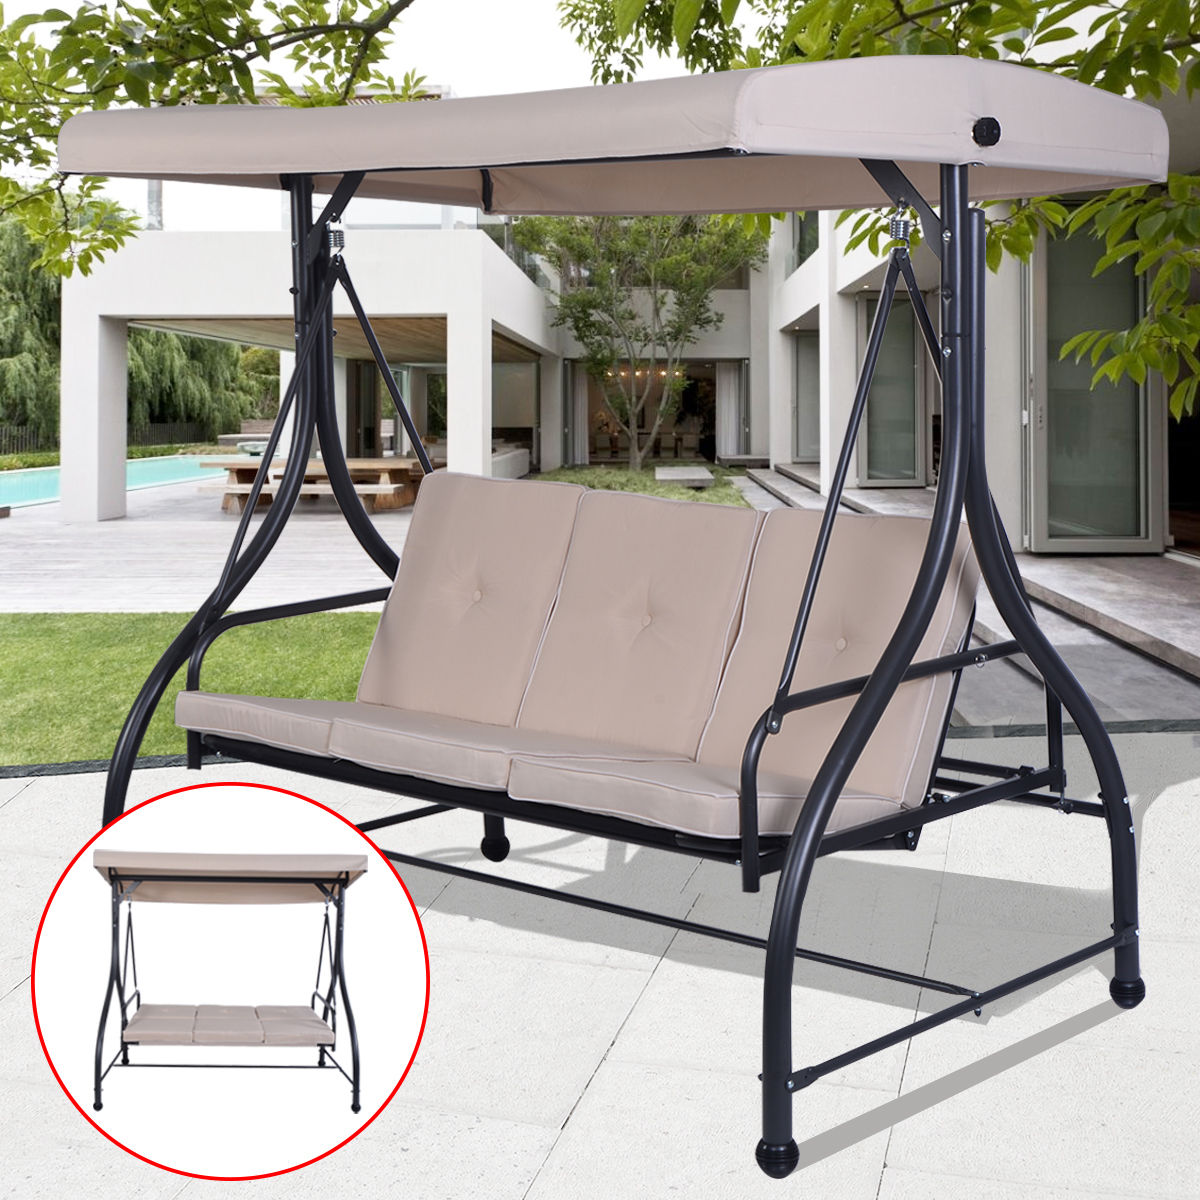 Costway Converting Outdoor Swing Canopy Hammock 3 Seats. Us Patio Furniture Las Vegas. Outdoor Patio Furniture Liquidation. Sarasota Breeze Patio Furniture. Discount Wicker Outdoor Patio Furniture. Patio Furniture Navy Cushions. Deck And Patio Raleigh. Tall Patio Table And Chairs. Hartman Patio Furniture Uk